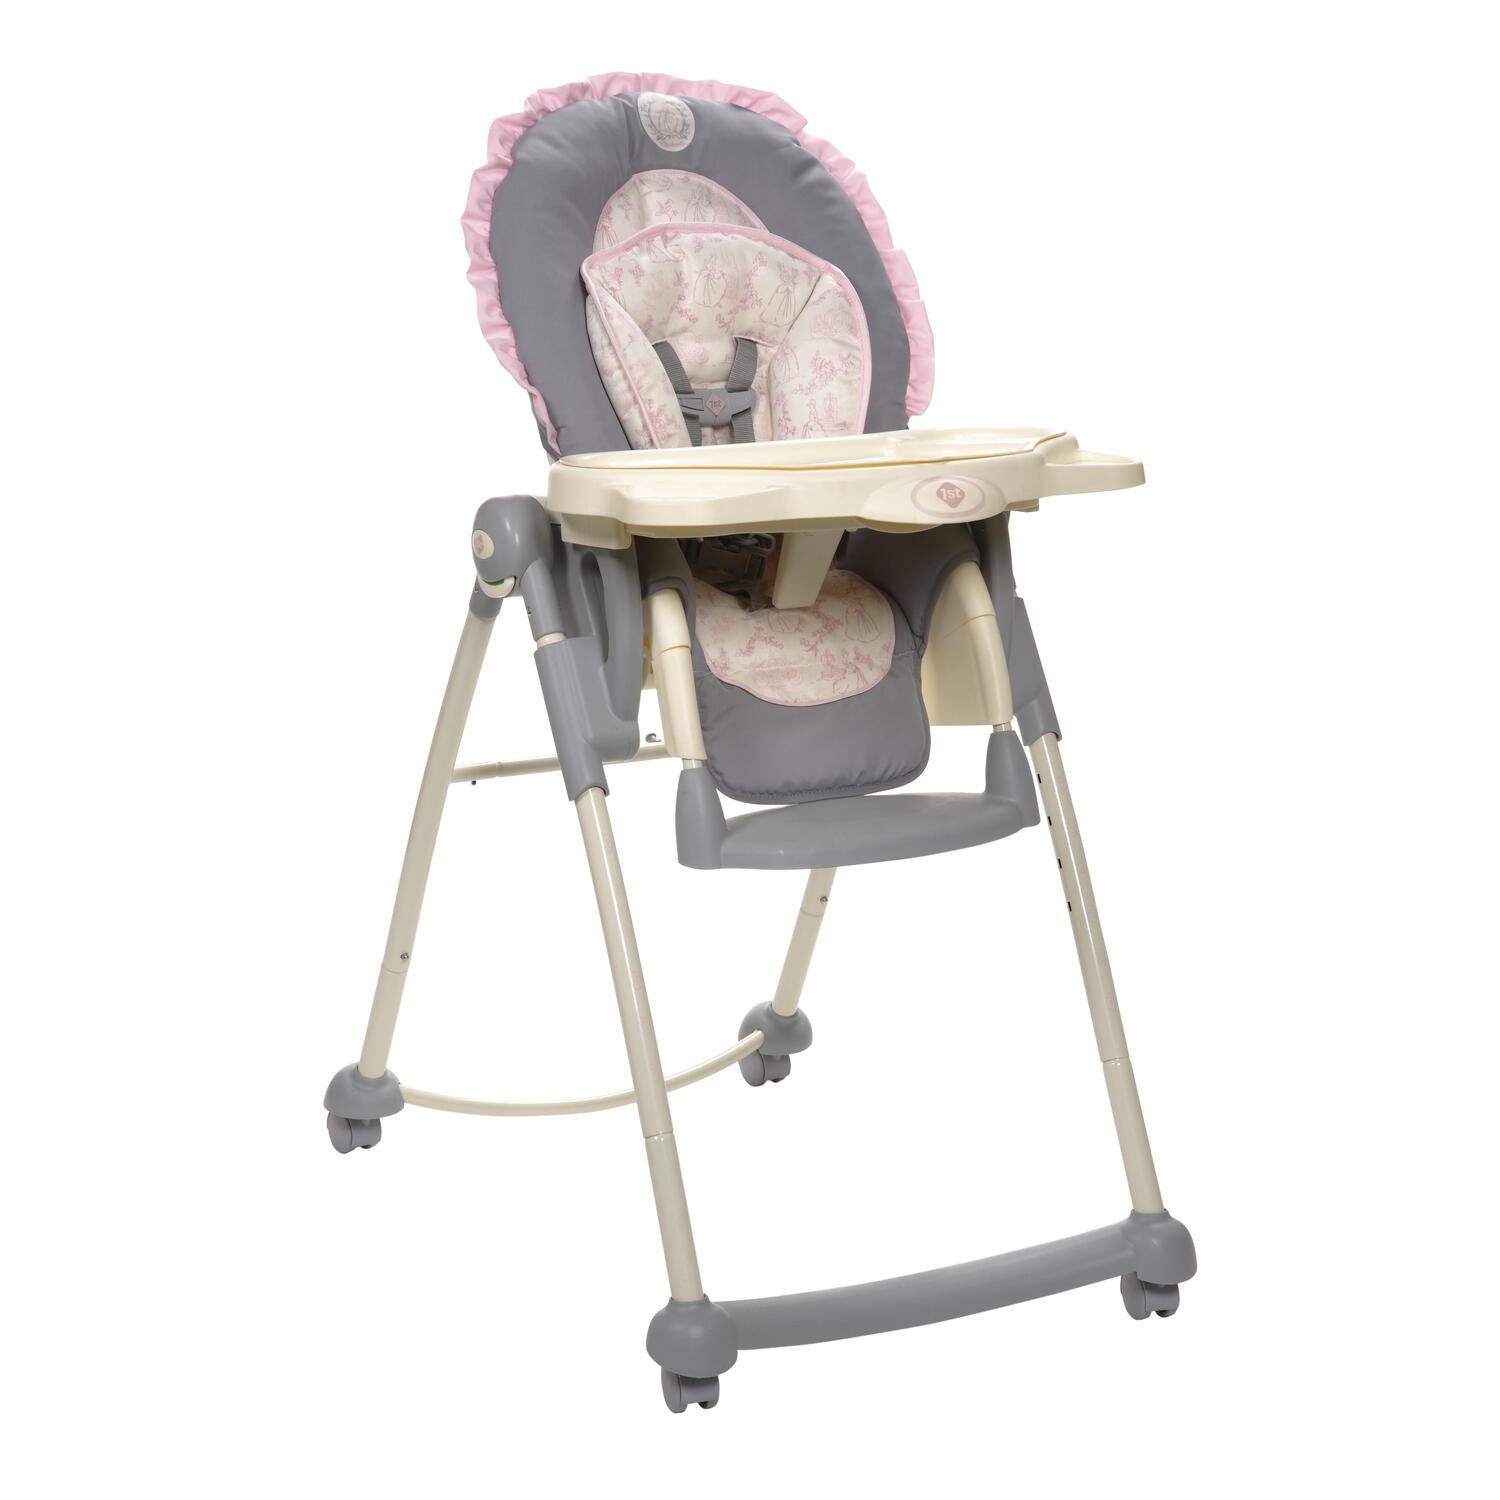 toys are us baby high chairs executive brown leather office disney princess chair silhouette